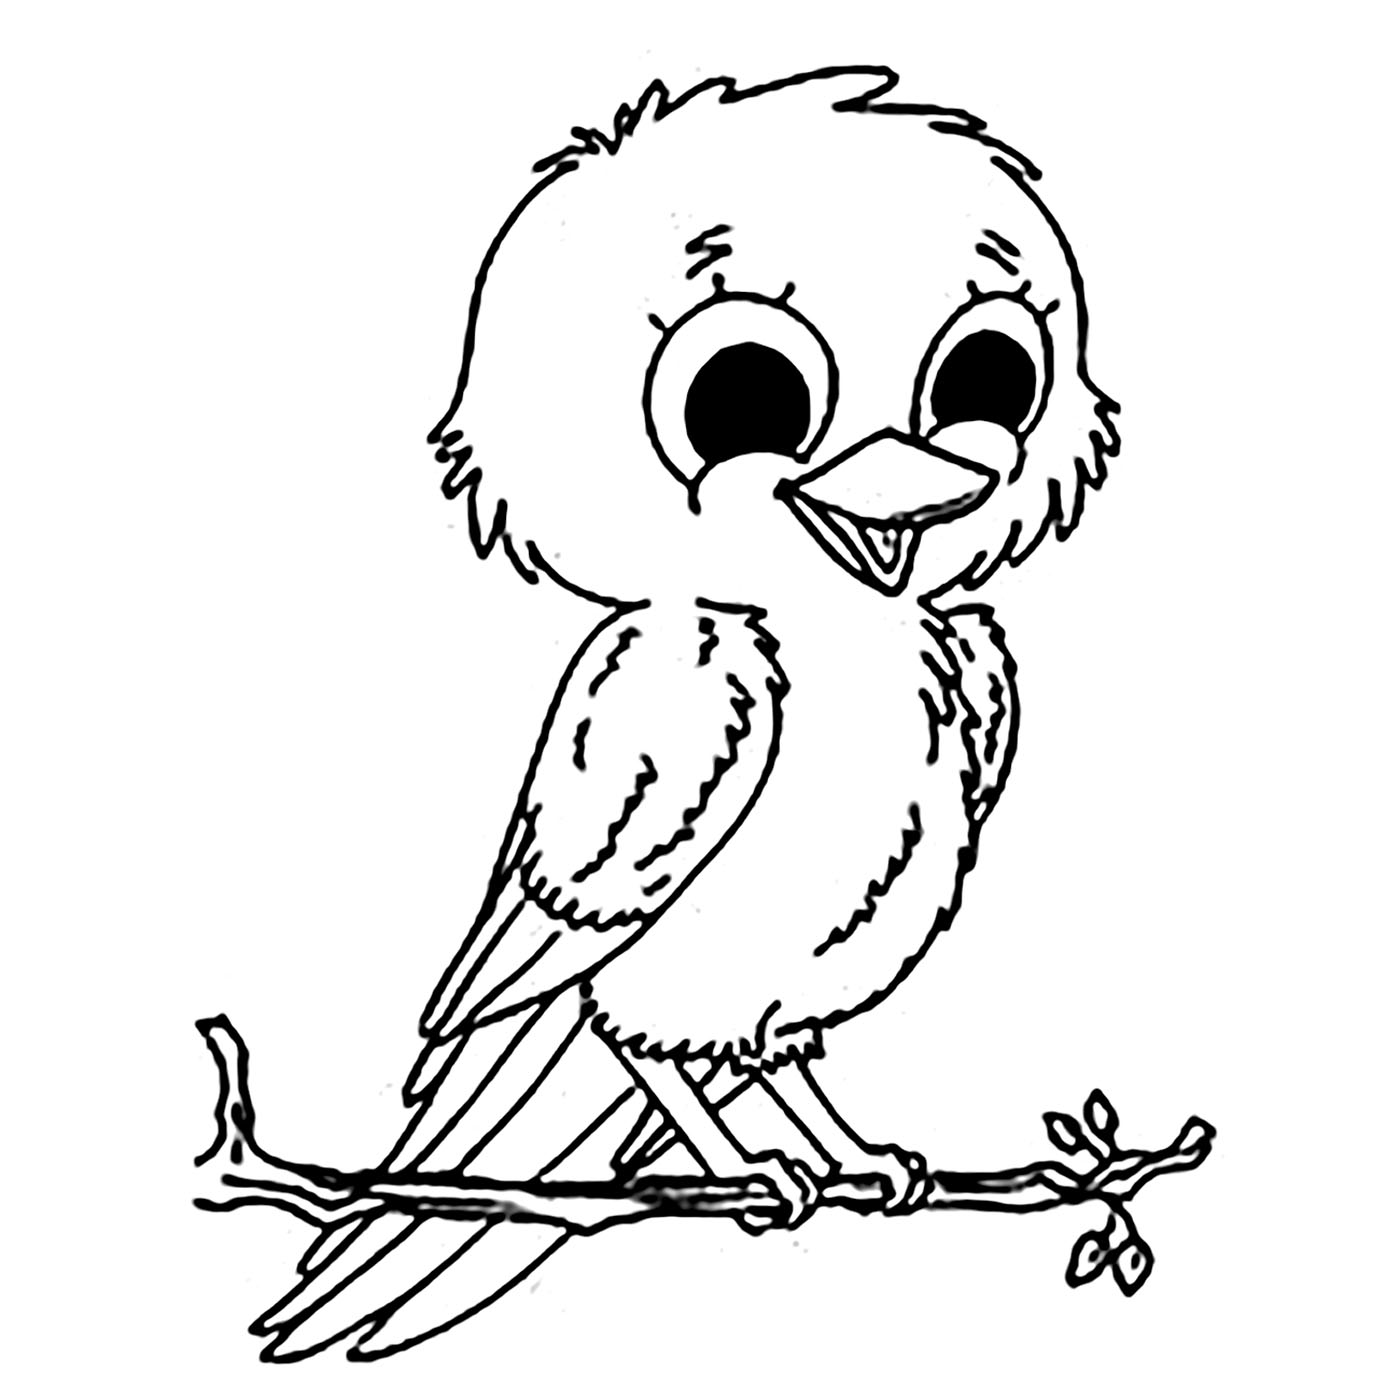 coloring pictures birds bird coloring pages birds pictures coloring 1 1